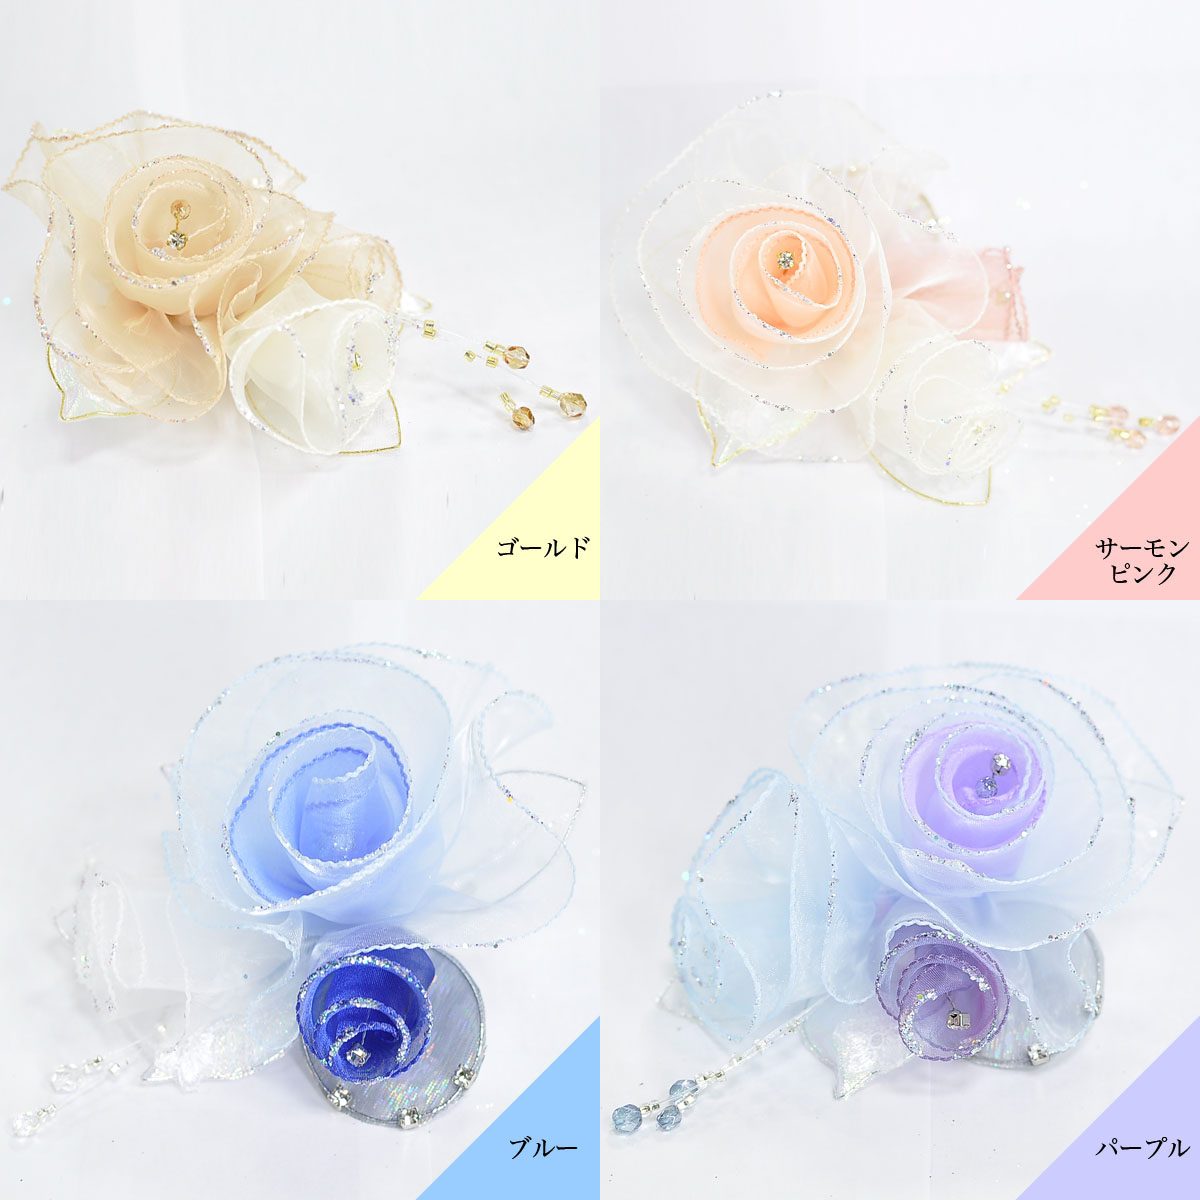 Boutique Koran Rakuten Global Market The Pretty Corsage Which Was